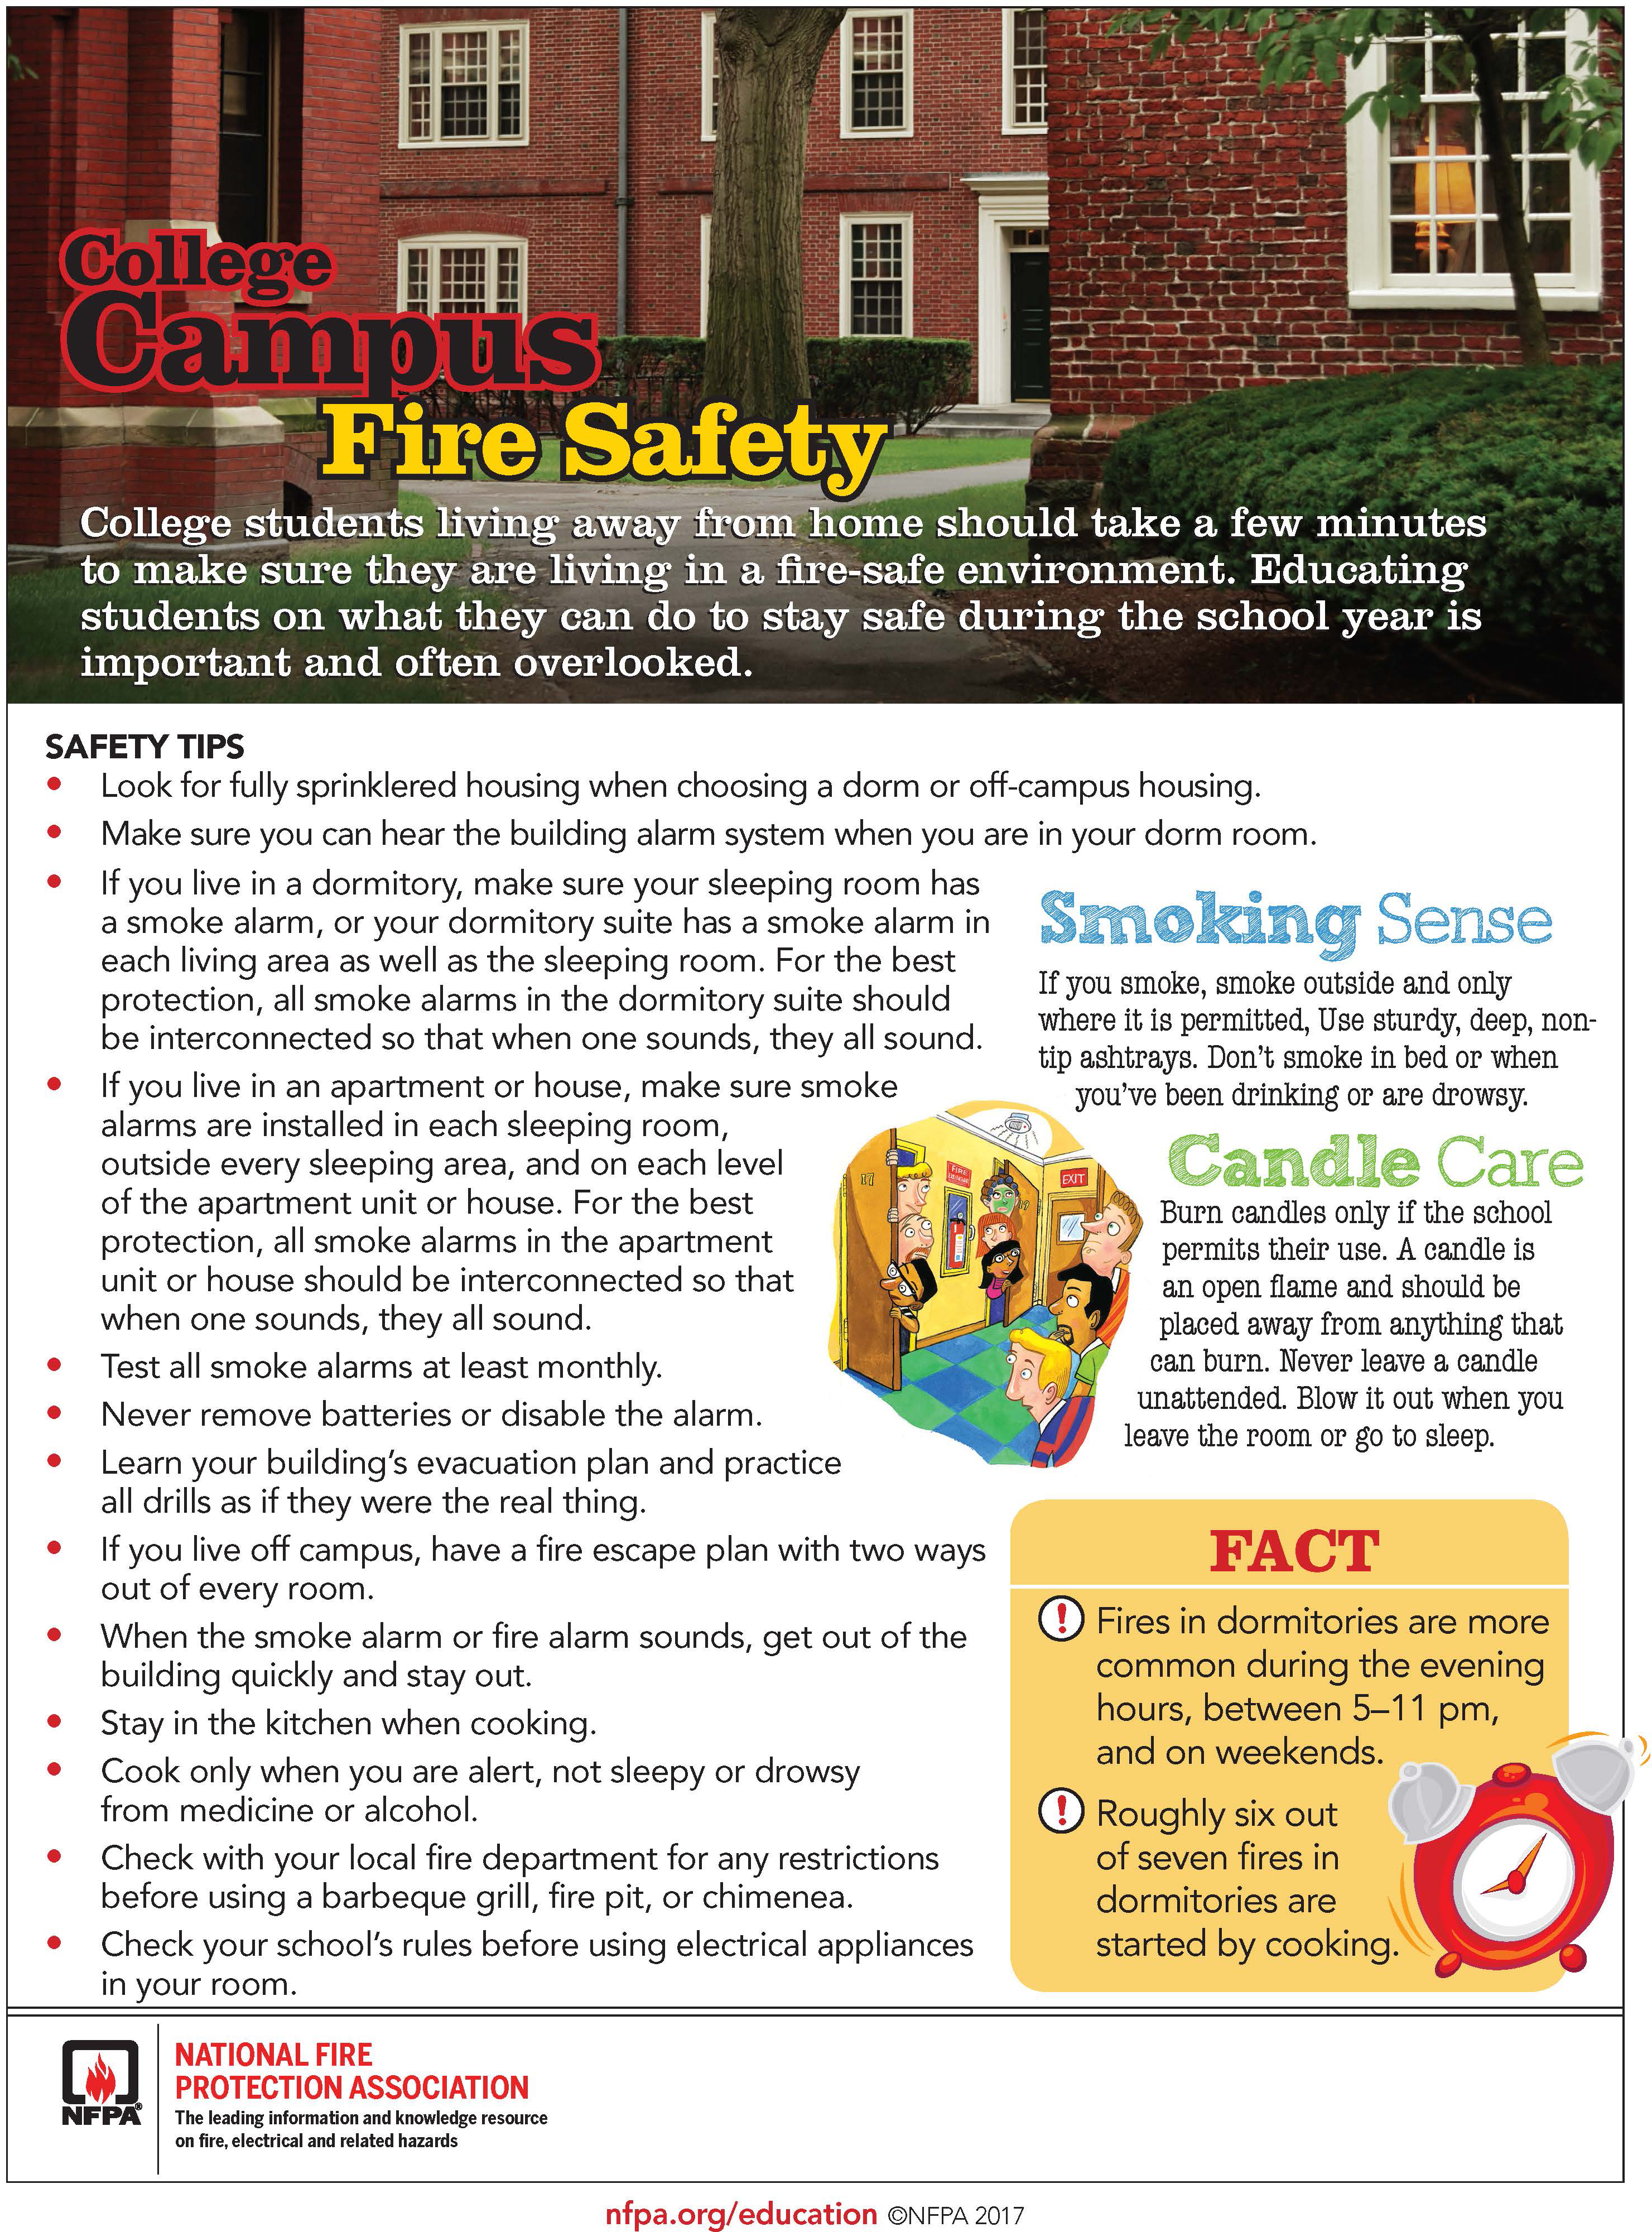 College Campus Fire Safety Tips